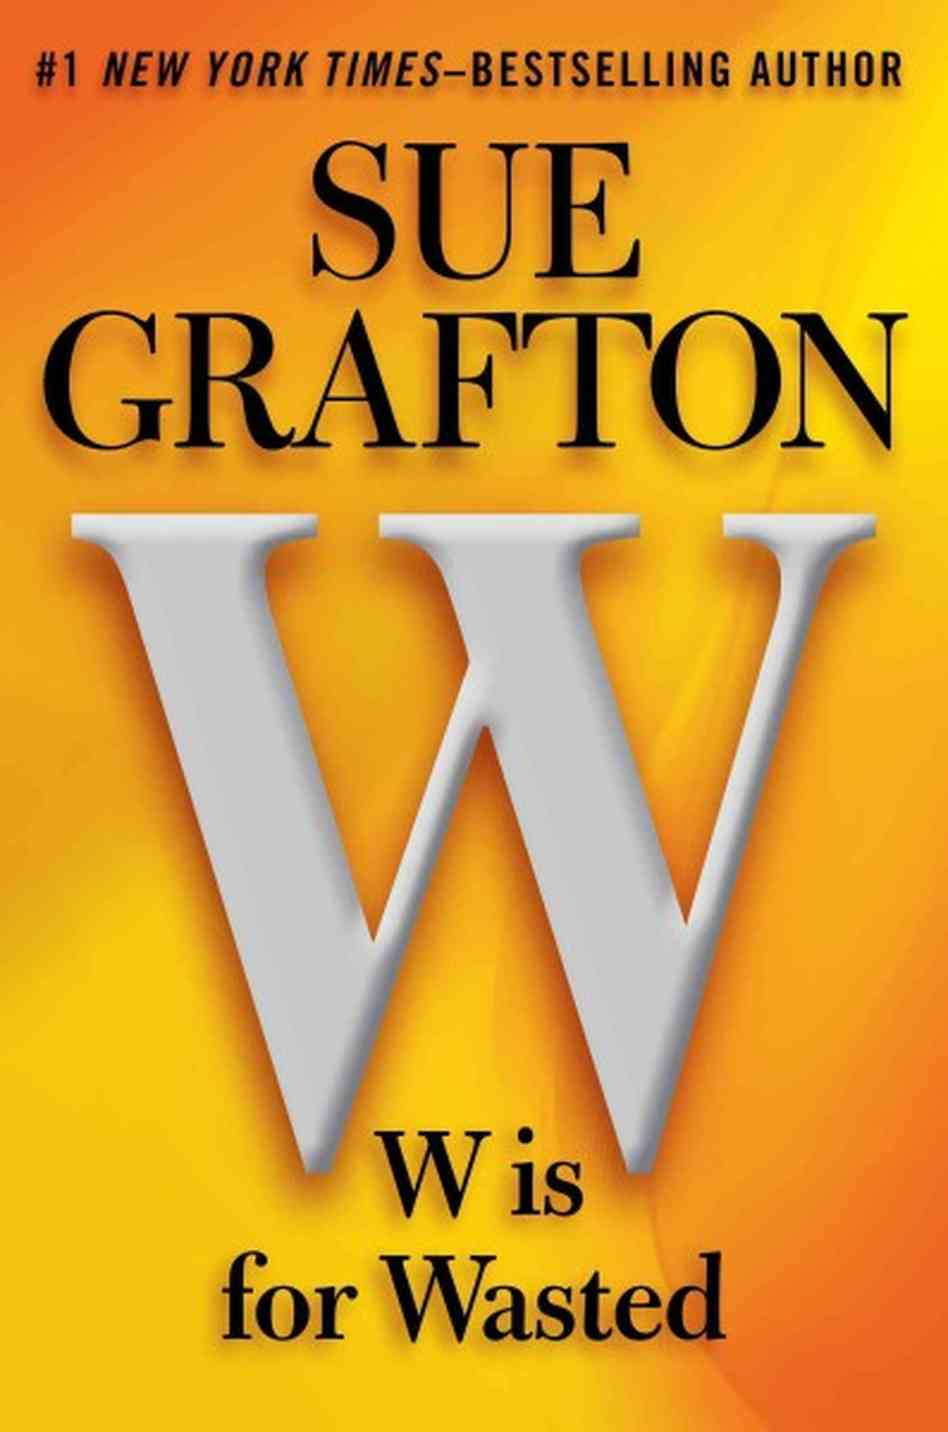 grafton_wisforwasted